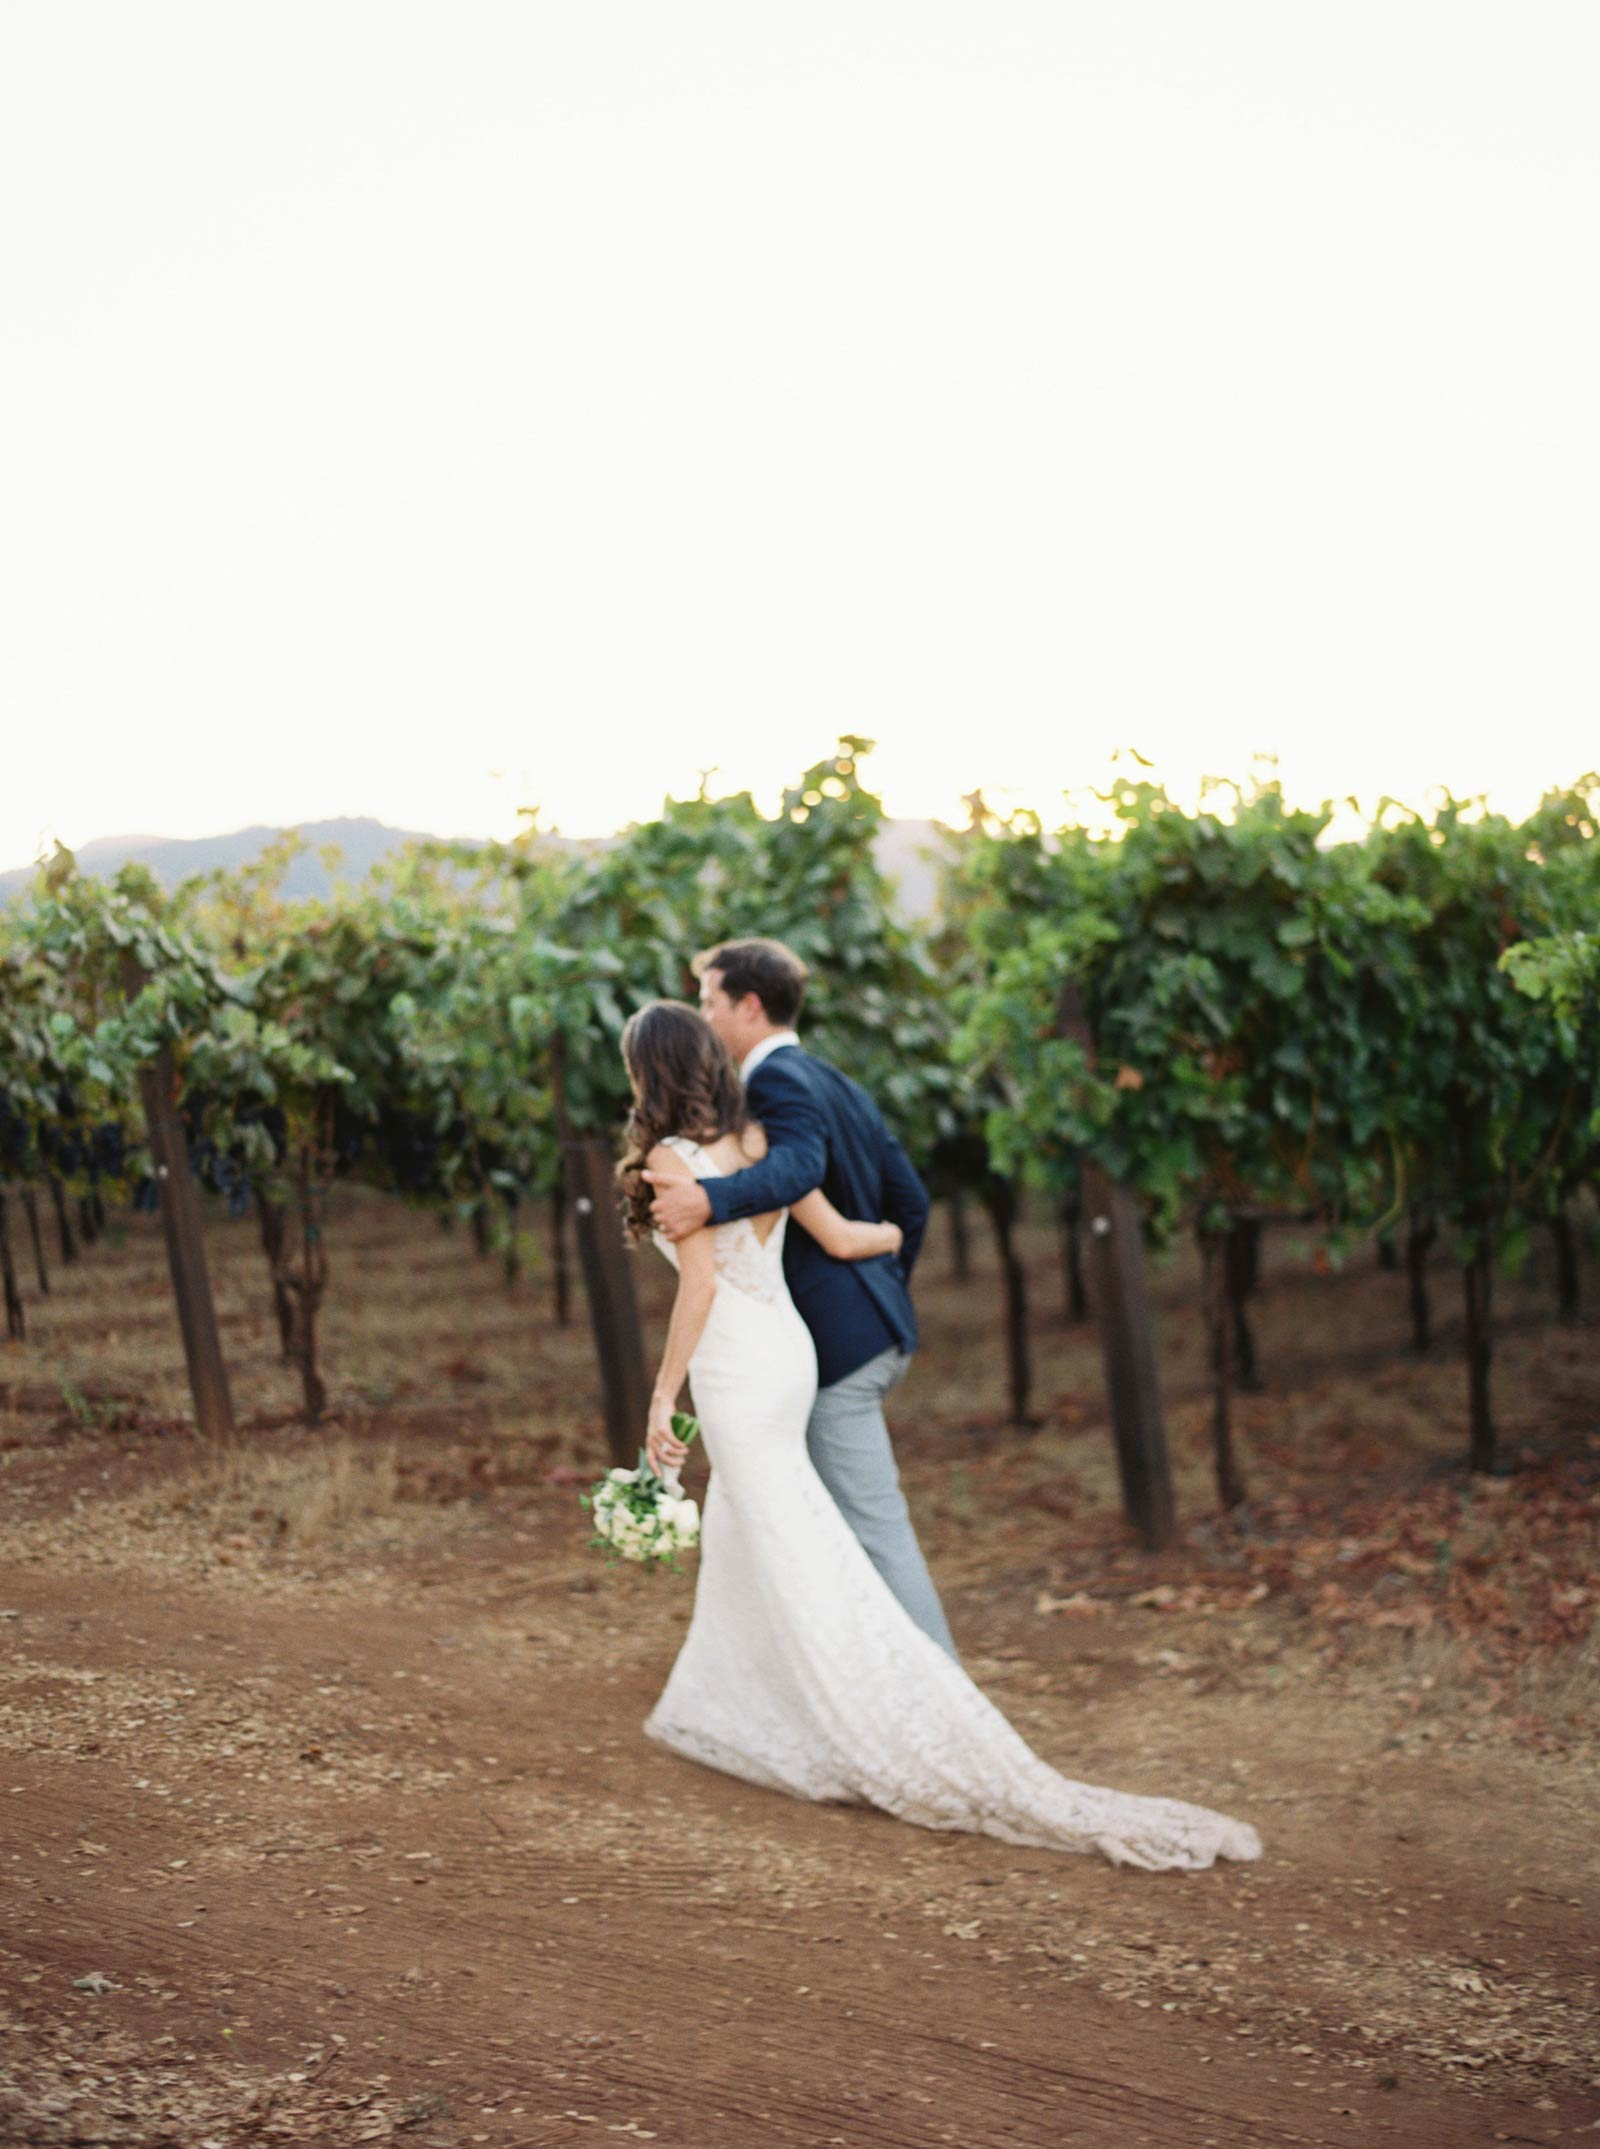 Napa-wedding-Kunde-winery-047.jpg